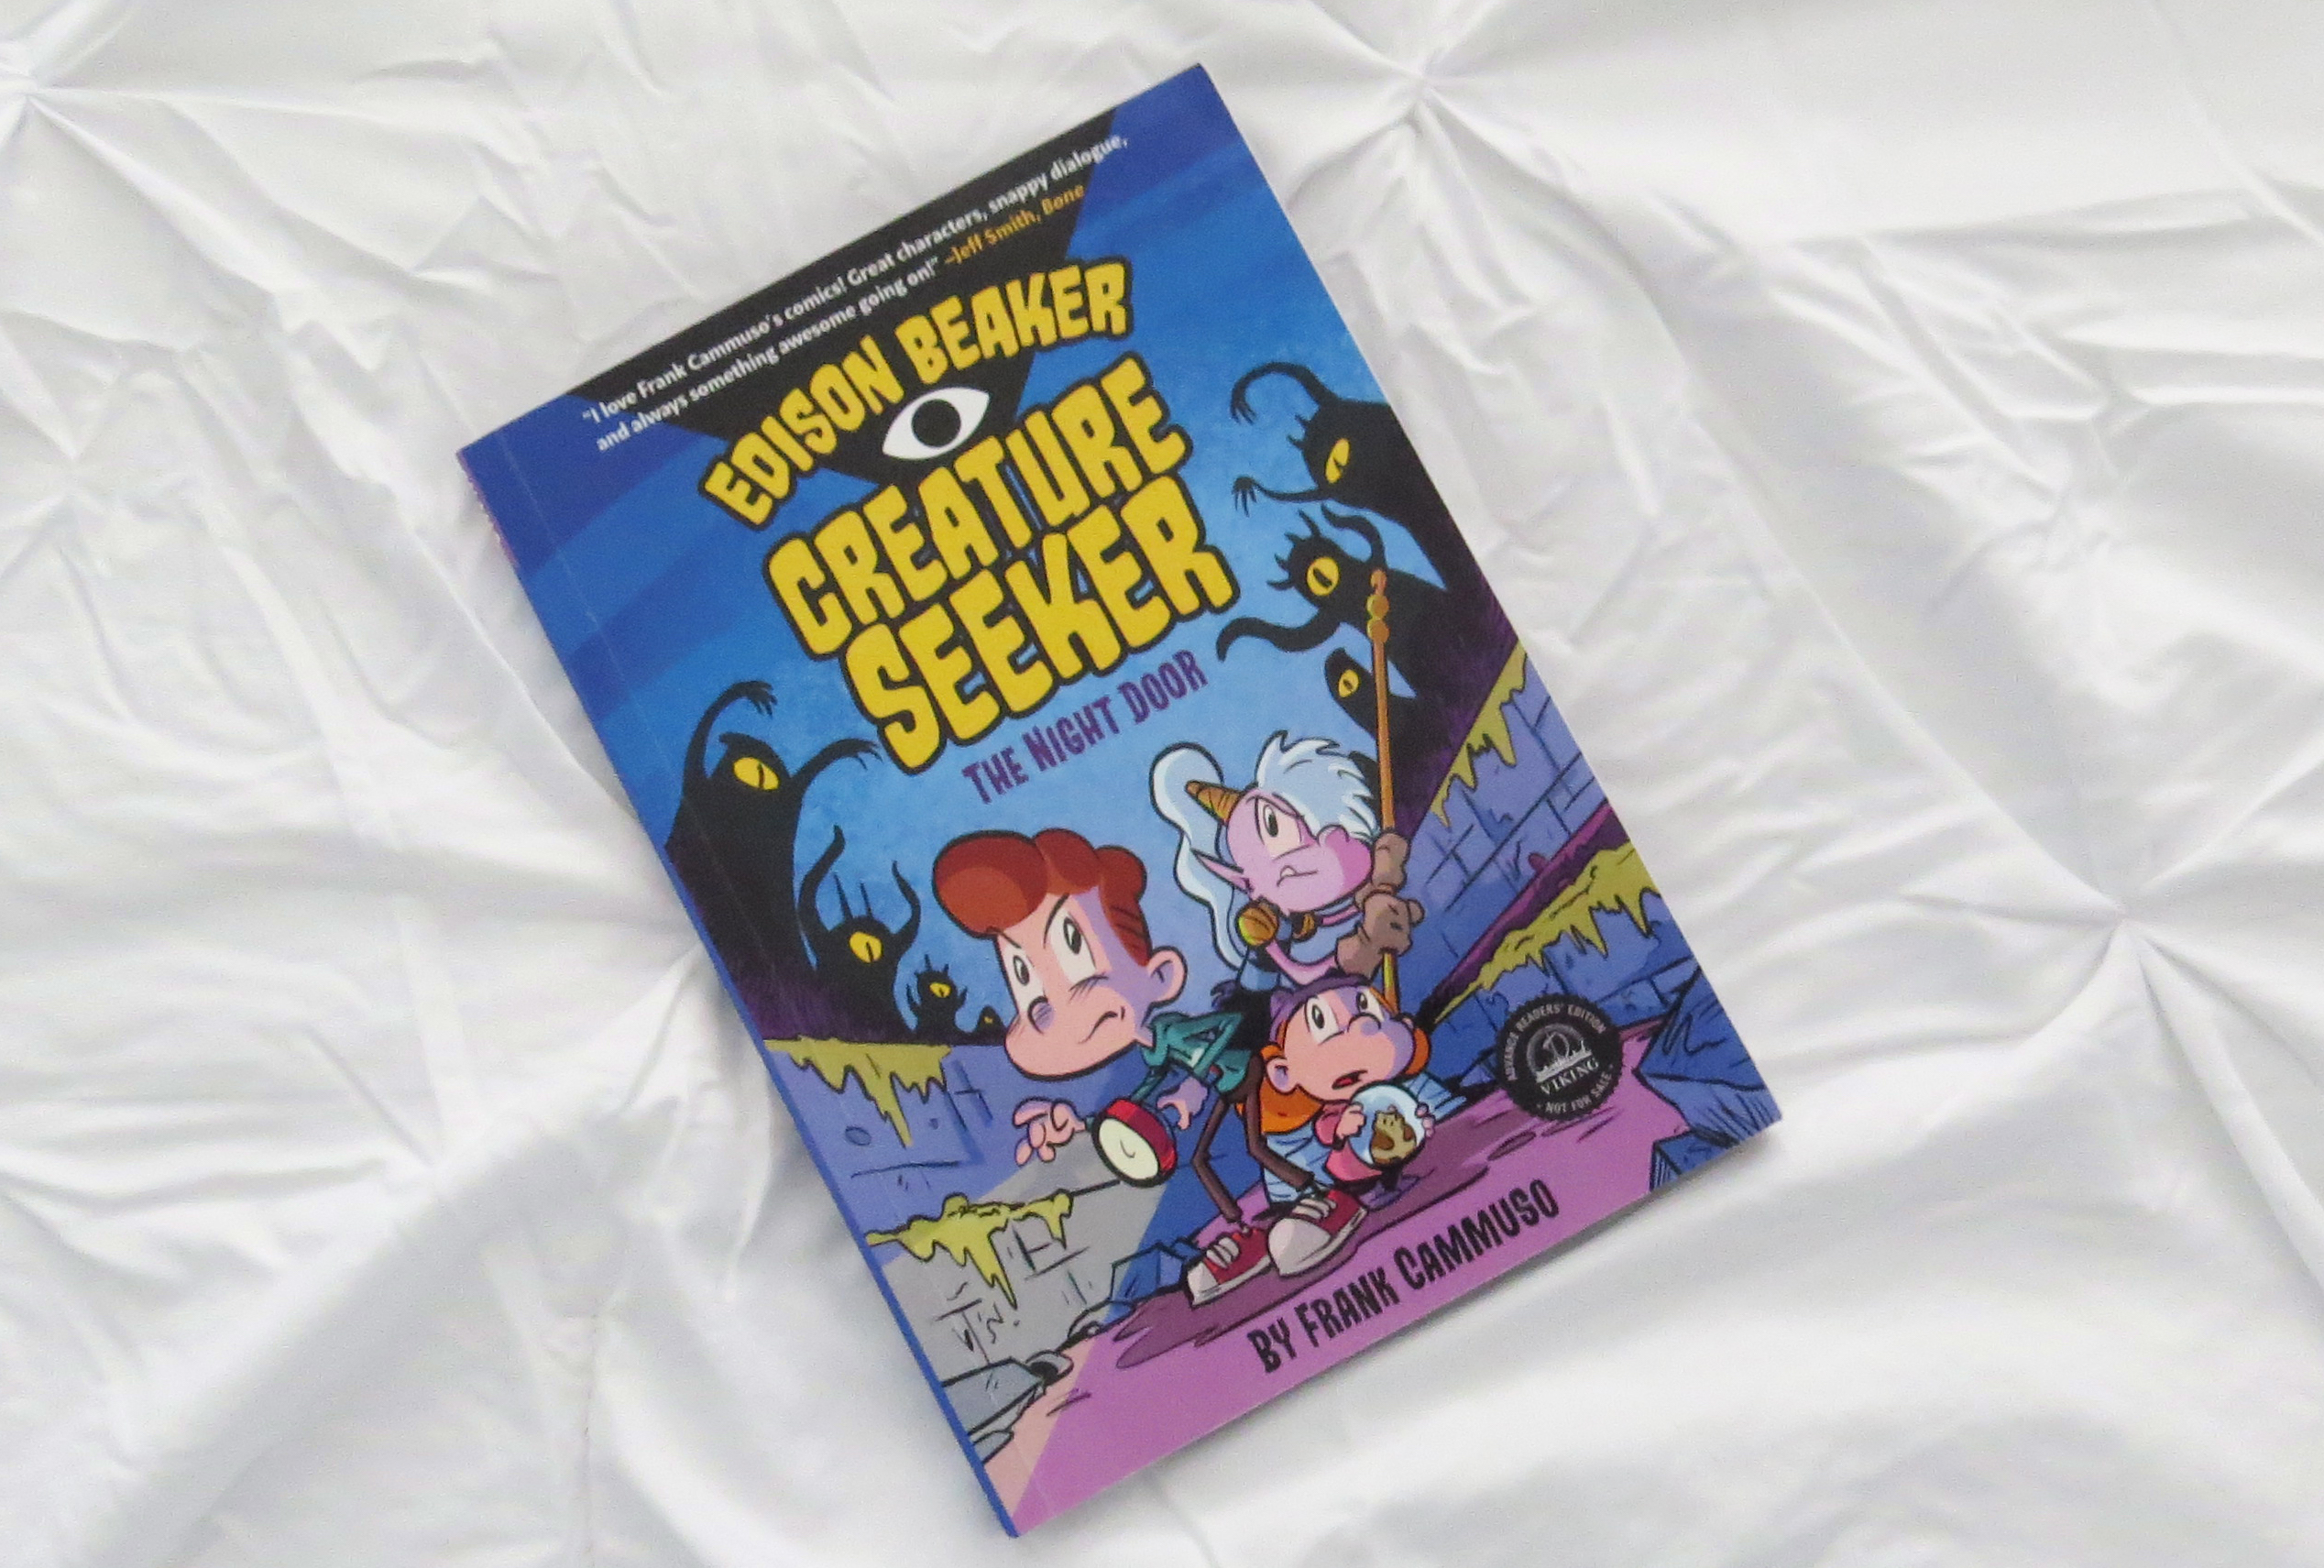 Edison Beaker Creature Seeker by Frank Cammusso - The Contented Reader